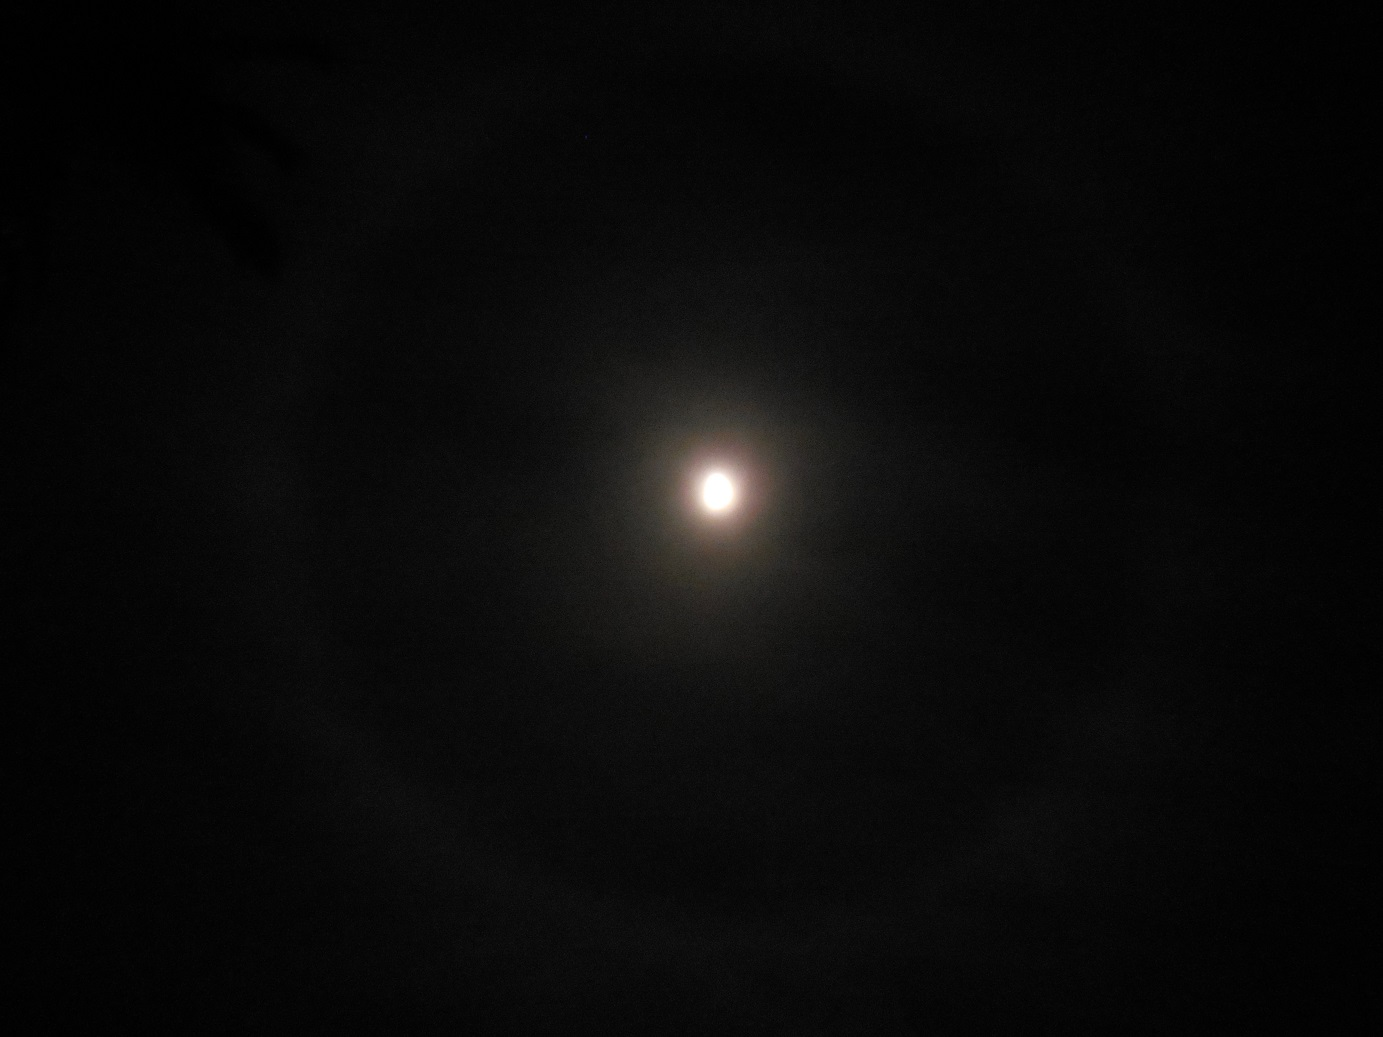 Halo around the moon